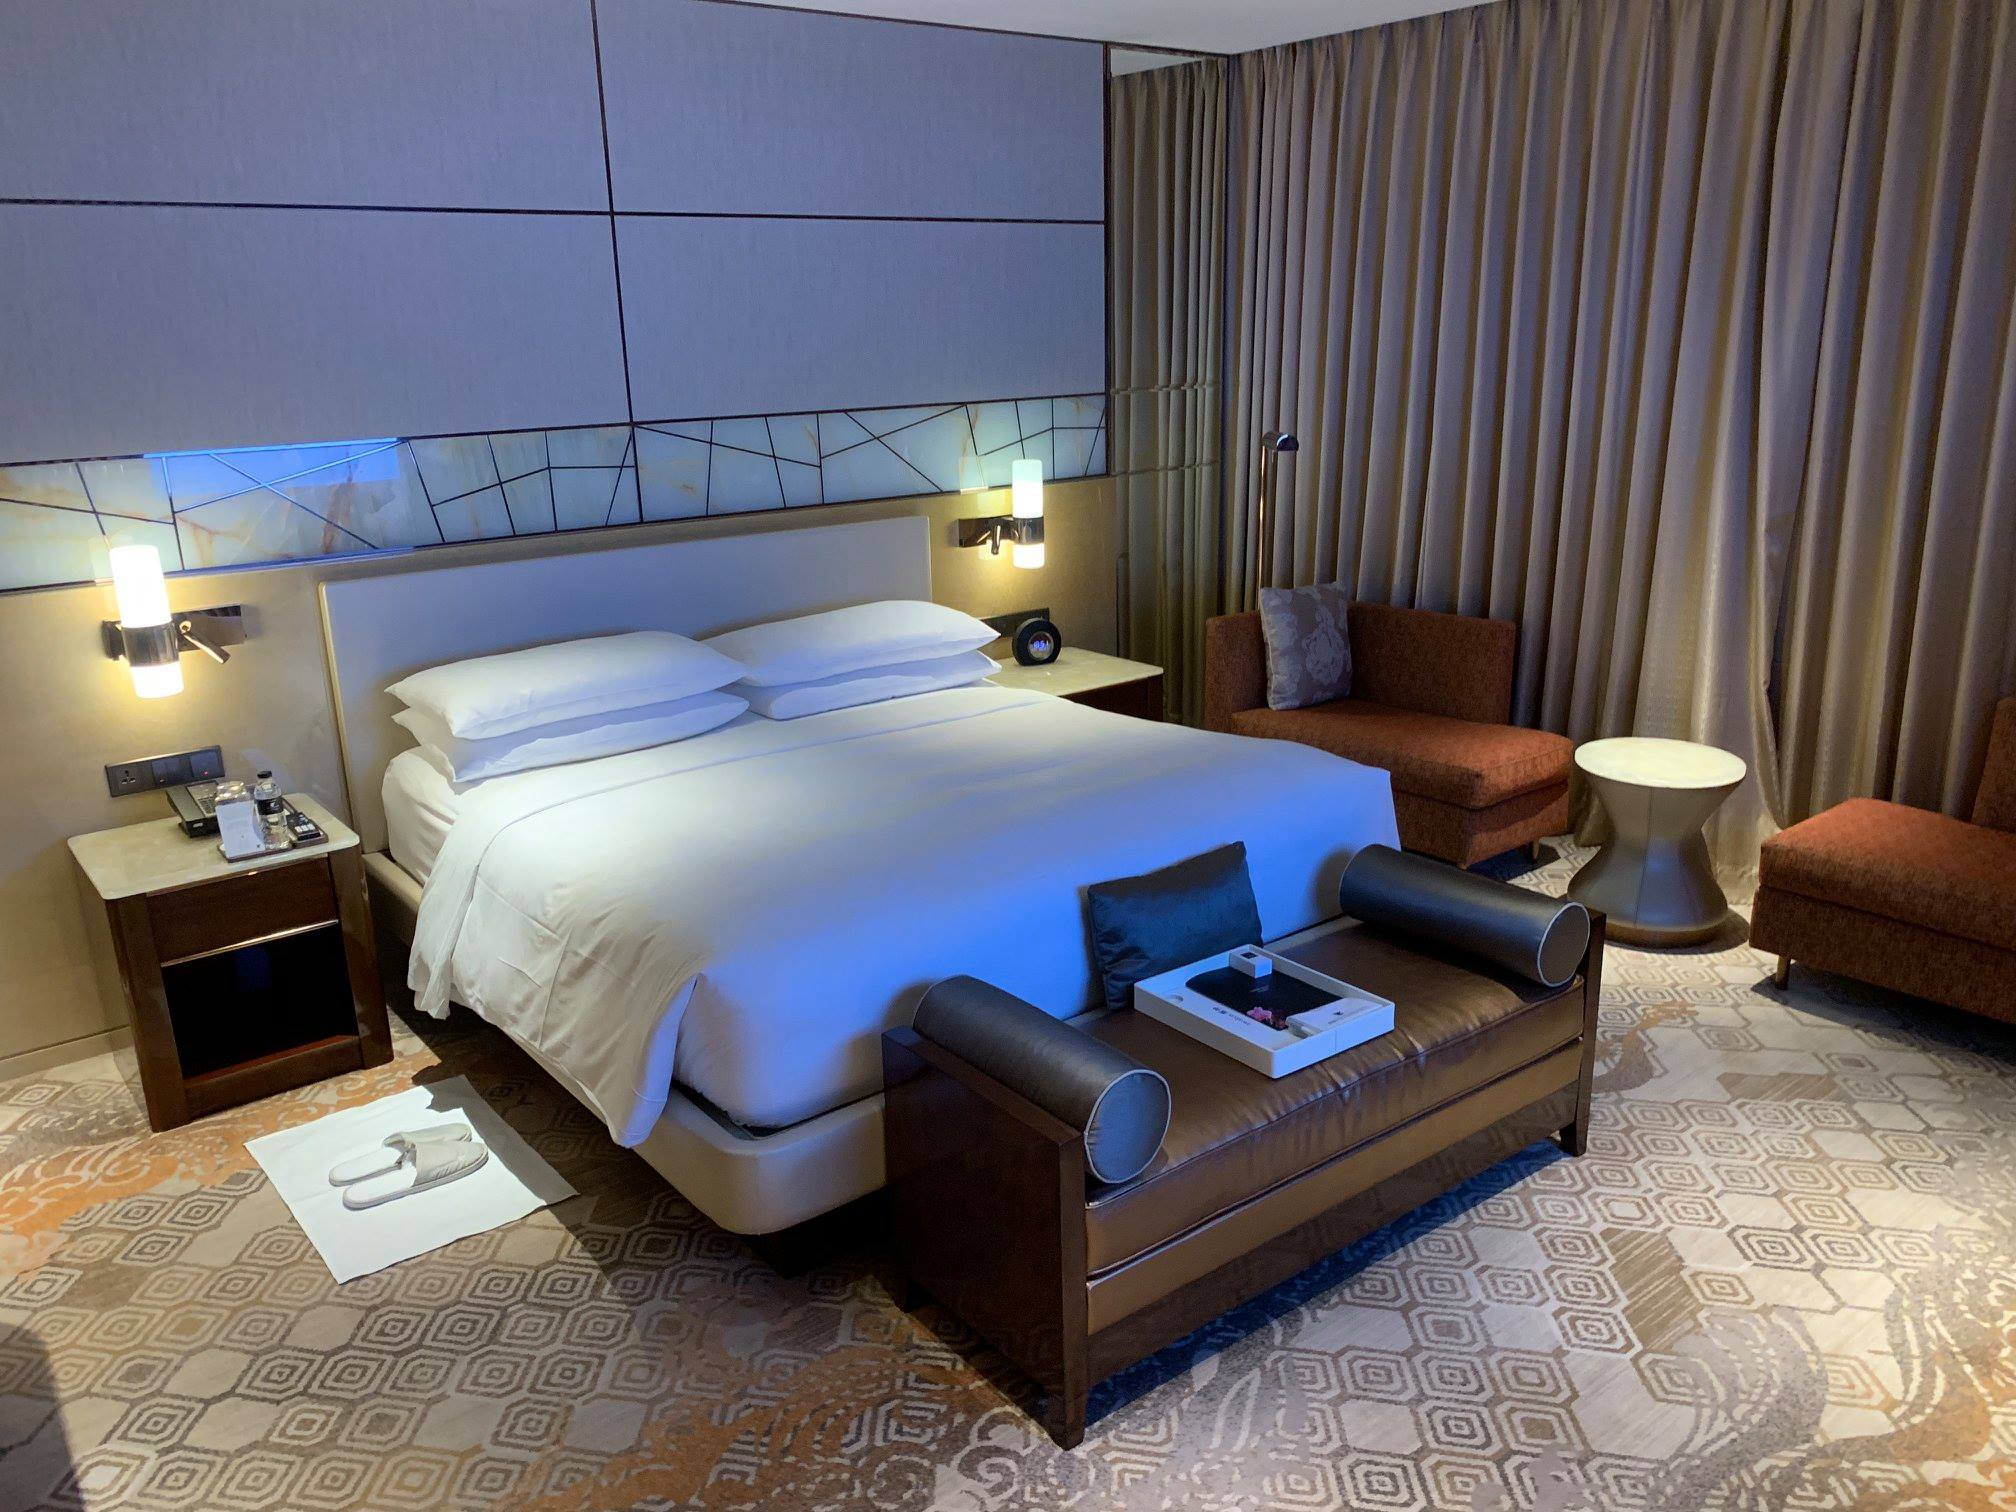 澳門JW萬豪酒店 JW Marriott Hotel Macau 入住報告